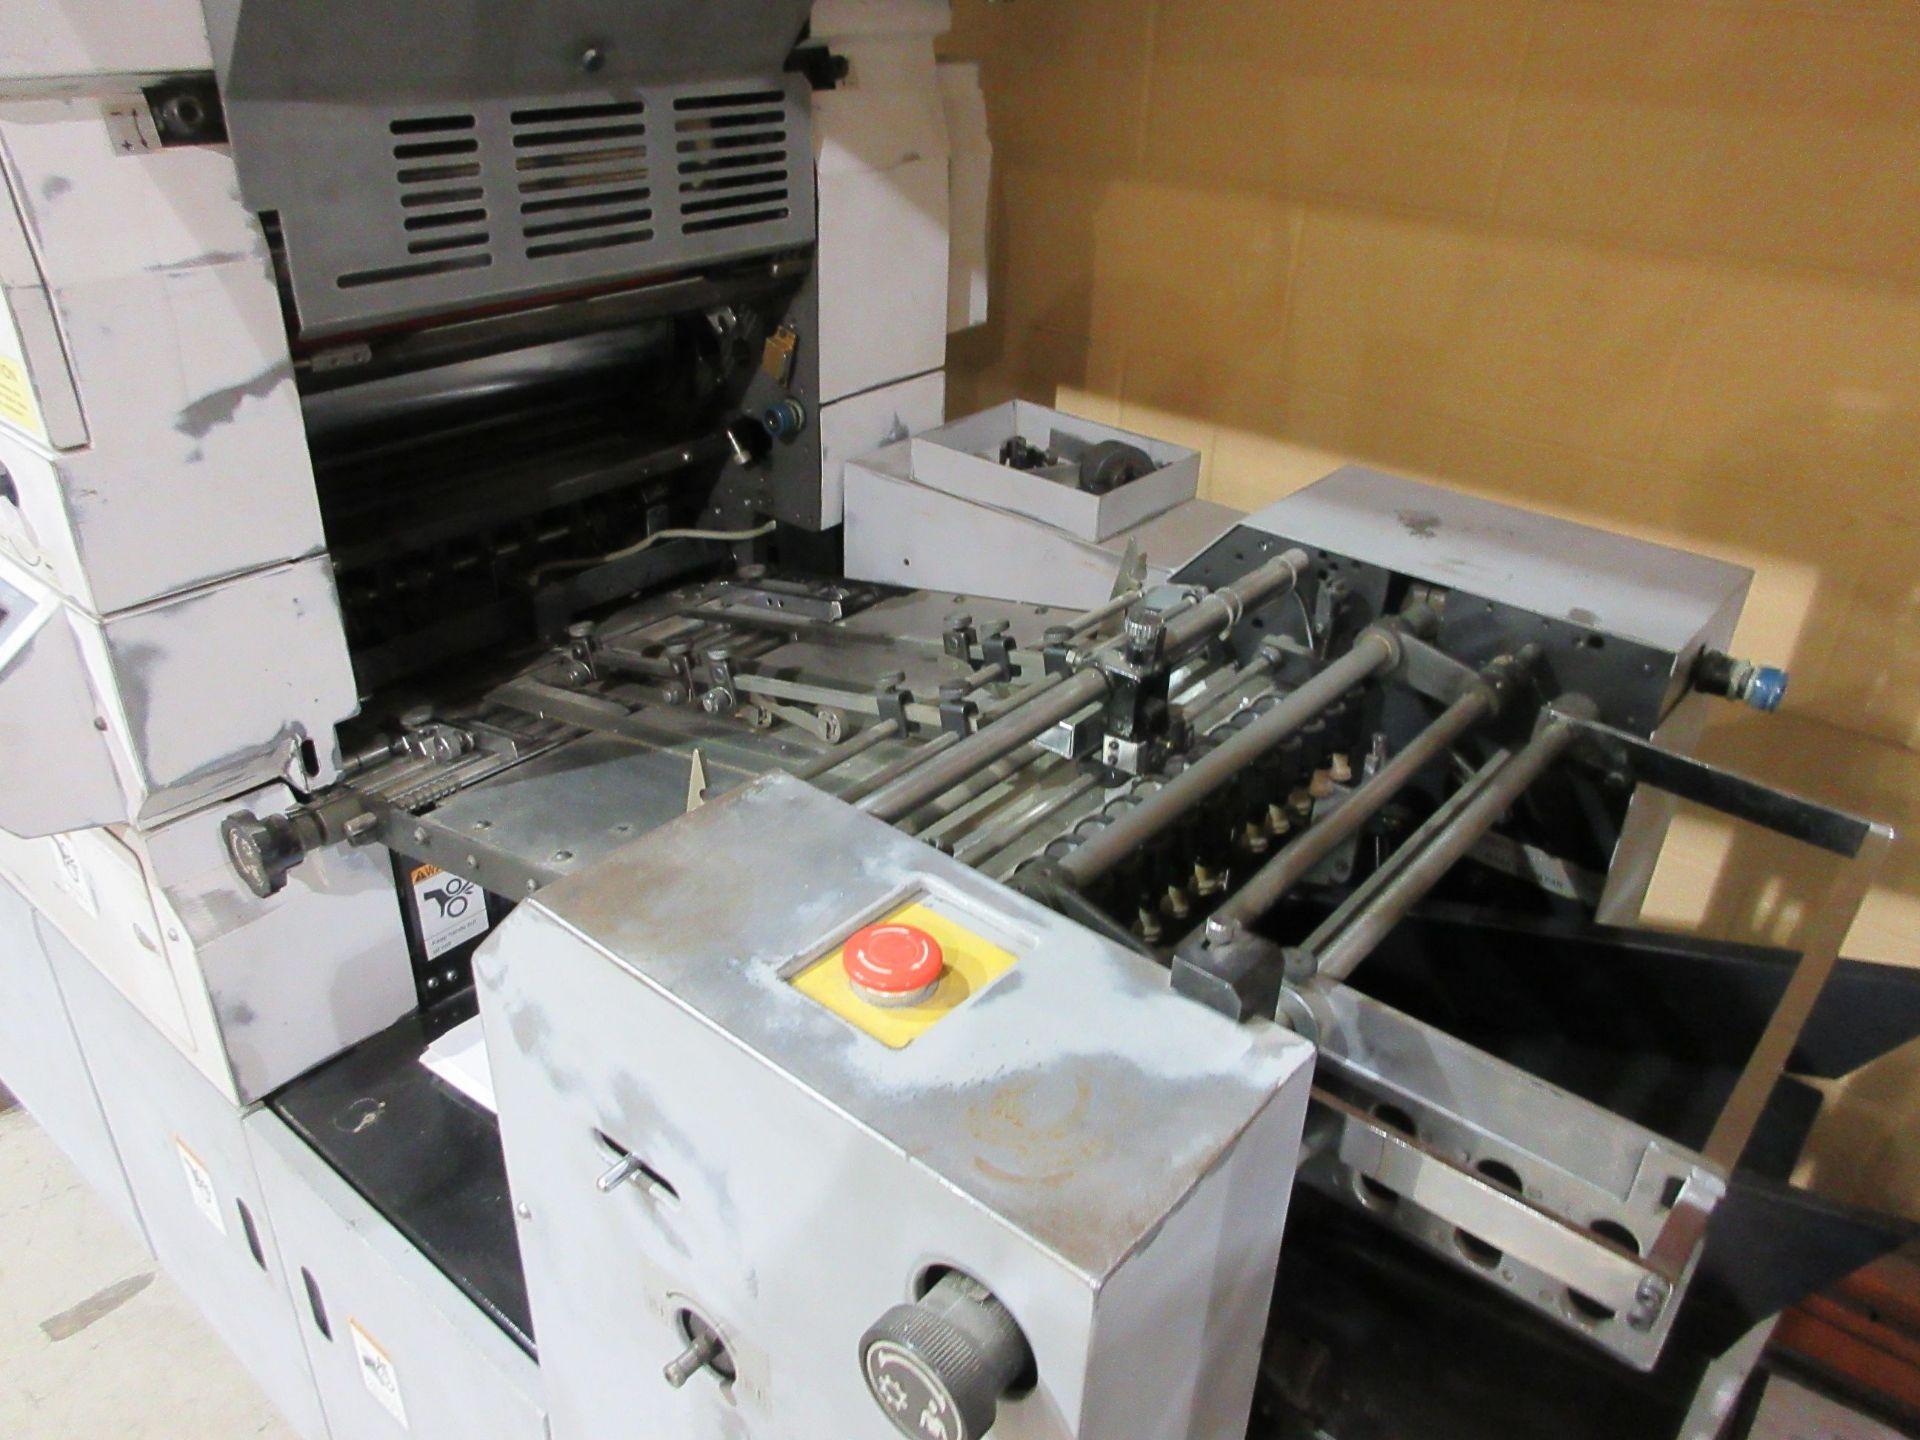 Lot 49 - HAMADA TRUE (2) color offset press (mod: H234A) (FOR PARTS ONLY)